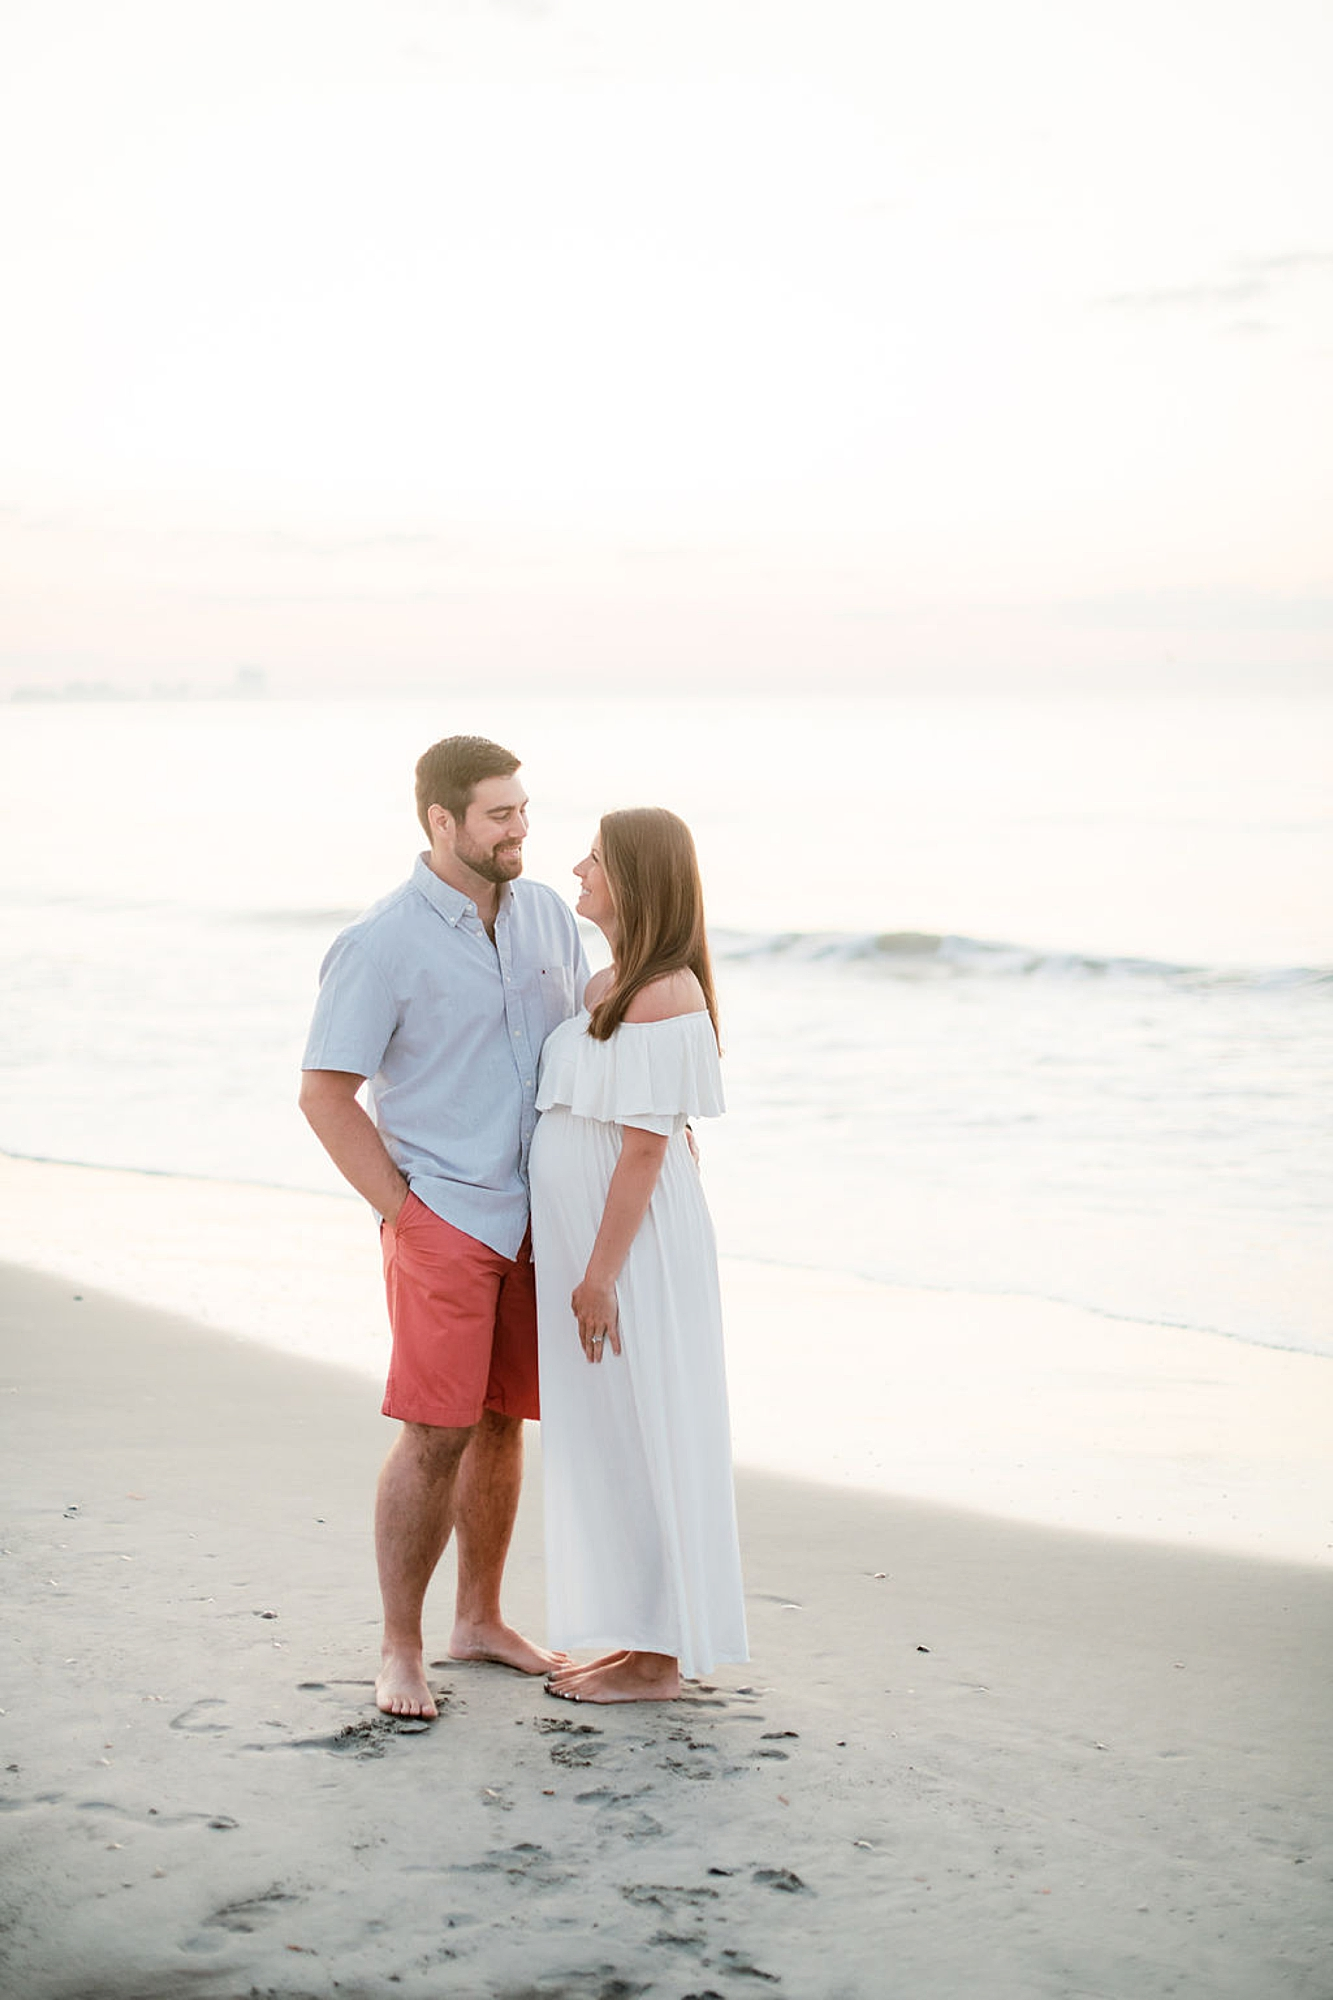 Glowy and Romantic Maternity Photography in Ocean City NJ by Magdalena Studios 0001